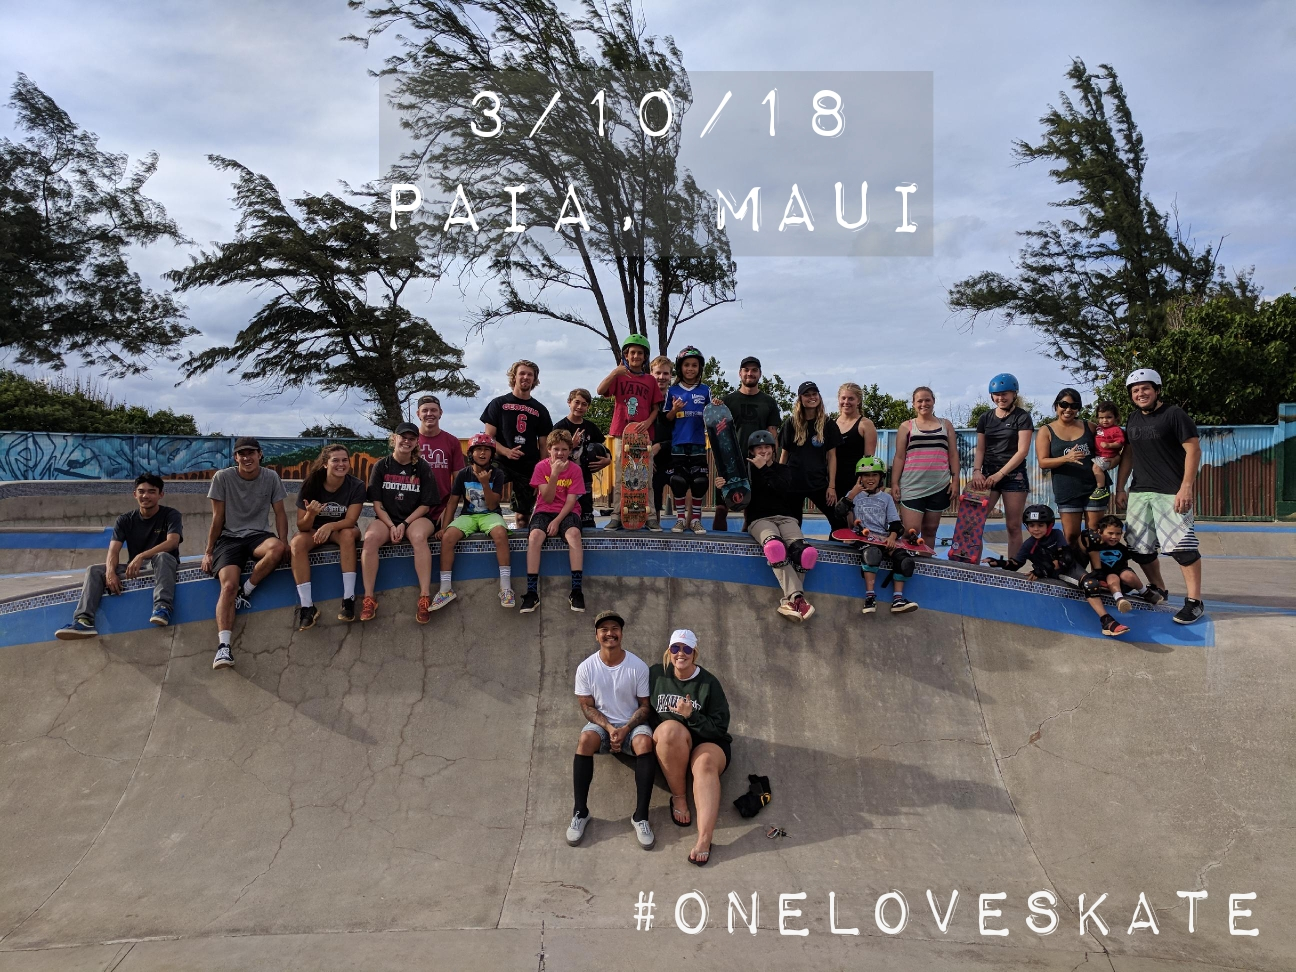 Last weekend, we worked with Surfing the Nations and Paia Youth & Cultural Center to have 1L Convos in Paia, Maui. Through this event and One Love interviews, we gave away several skateboards, shirts, and stickers to share the 1L. #LiveOneLove